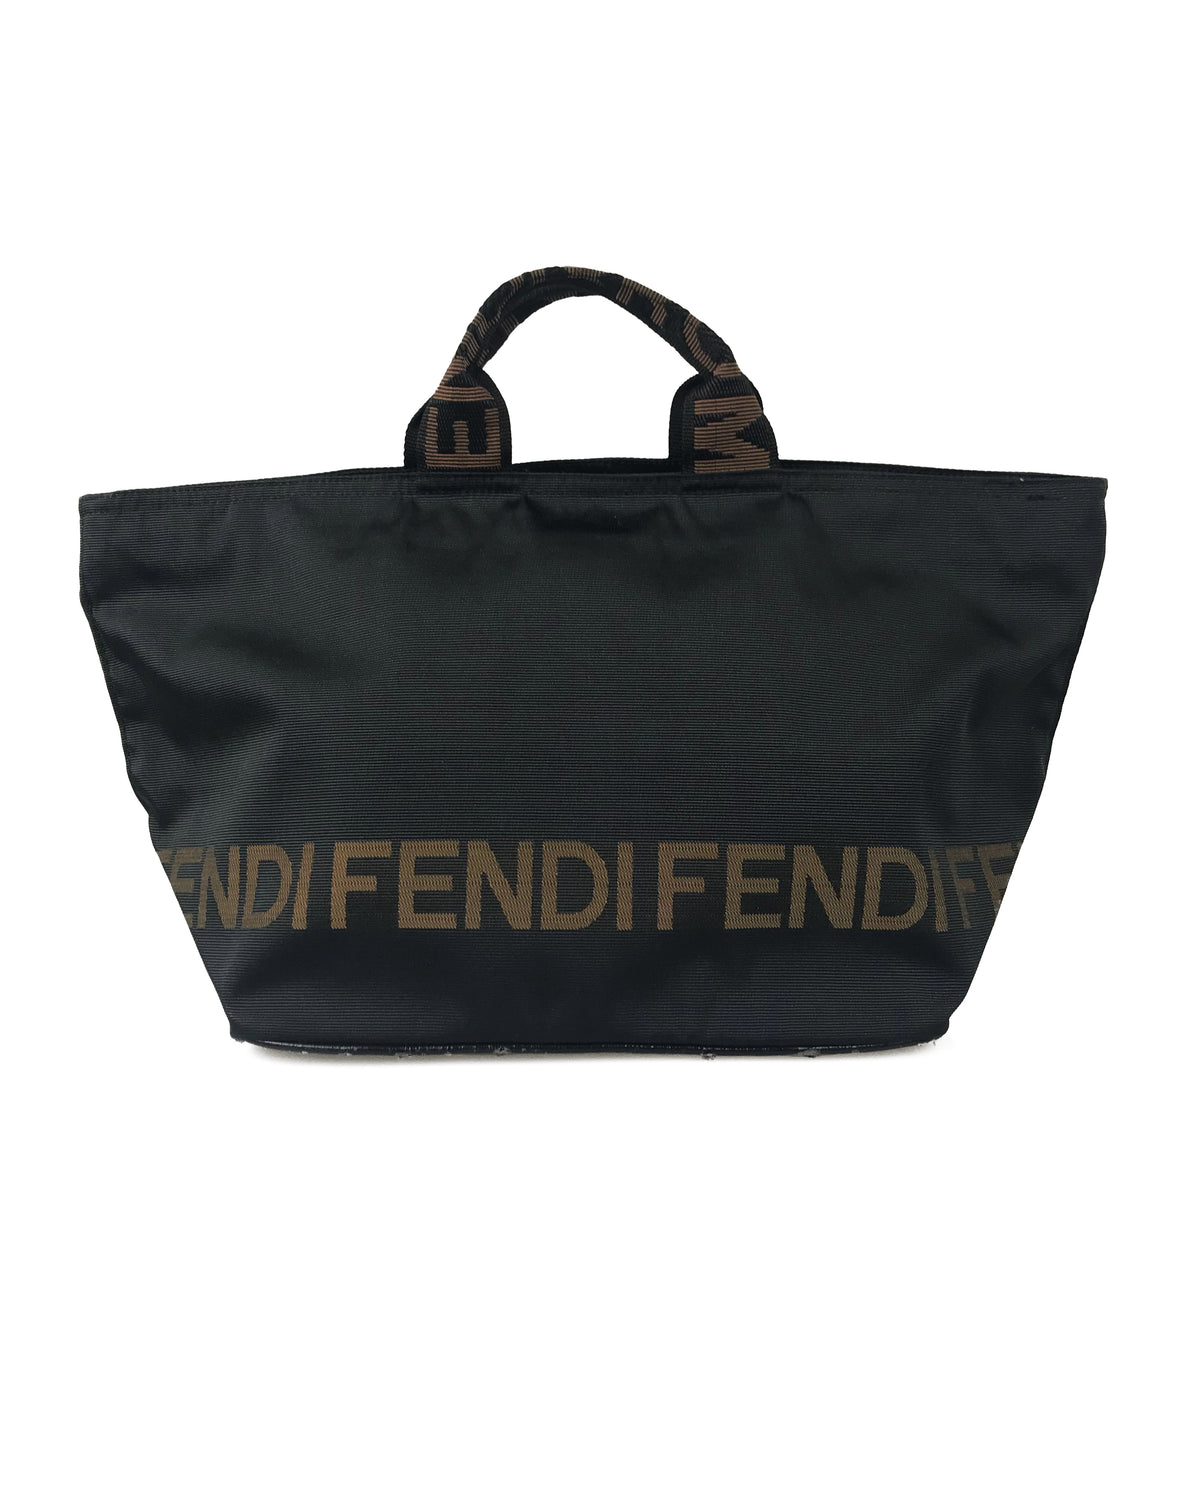 5df74926ccb3 Fendi Logo Tote Bag